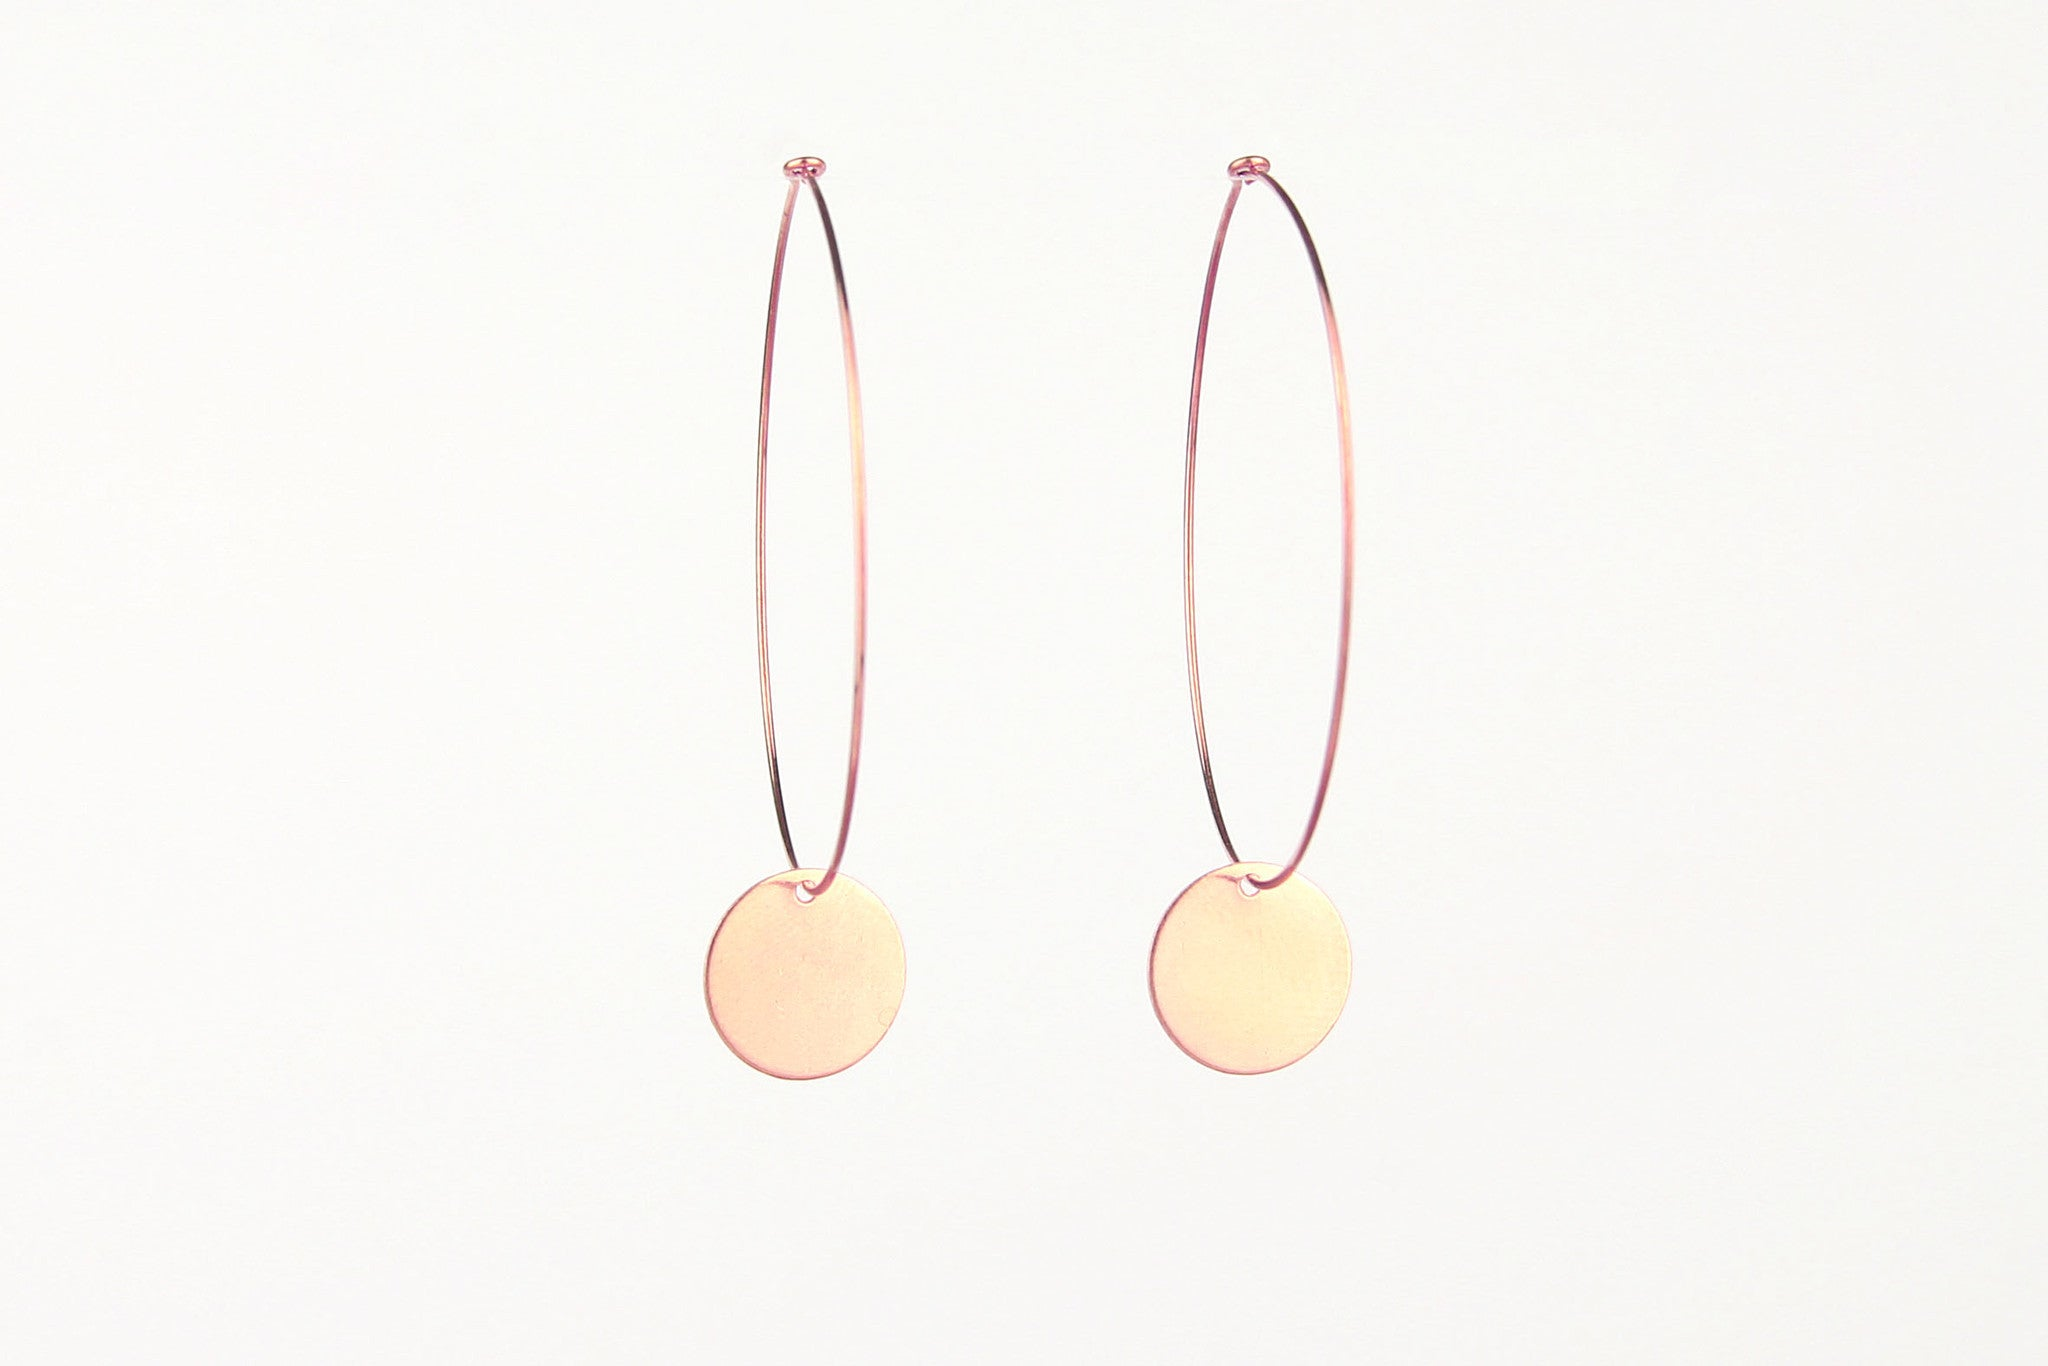 jewelberry ohrringe earrings medium disc hoops rose gold plated sterling silver fine jewelry handmade with love fairtrade